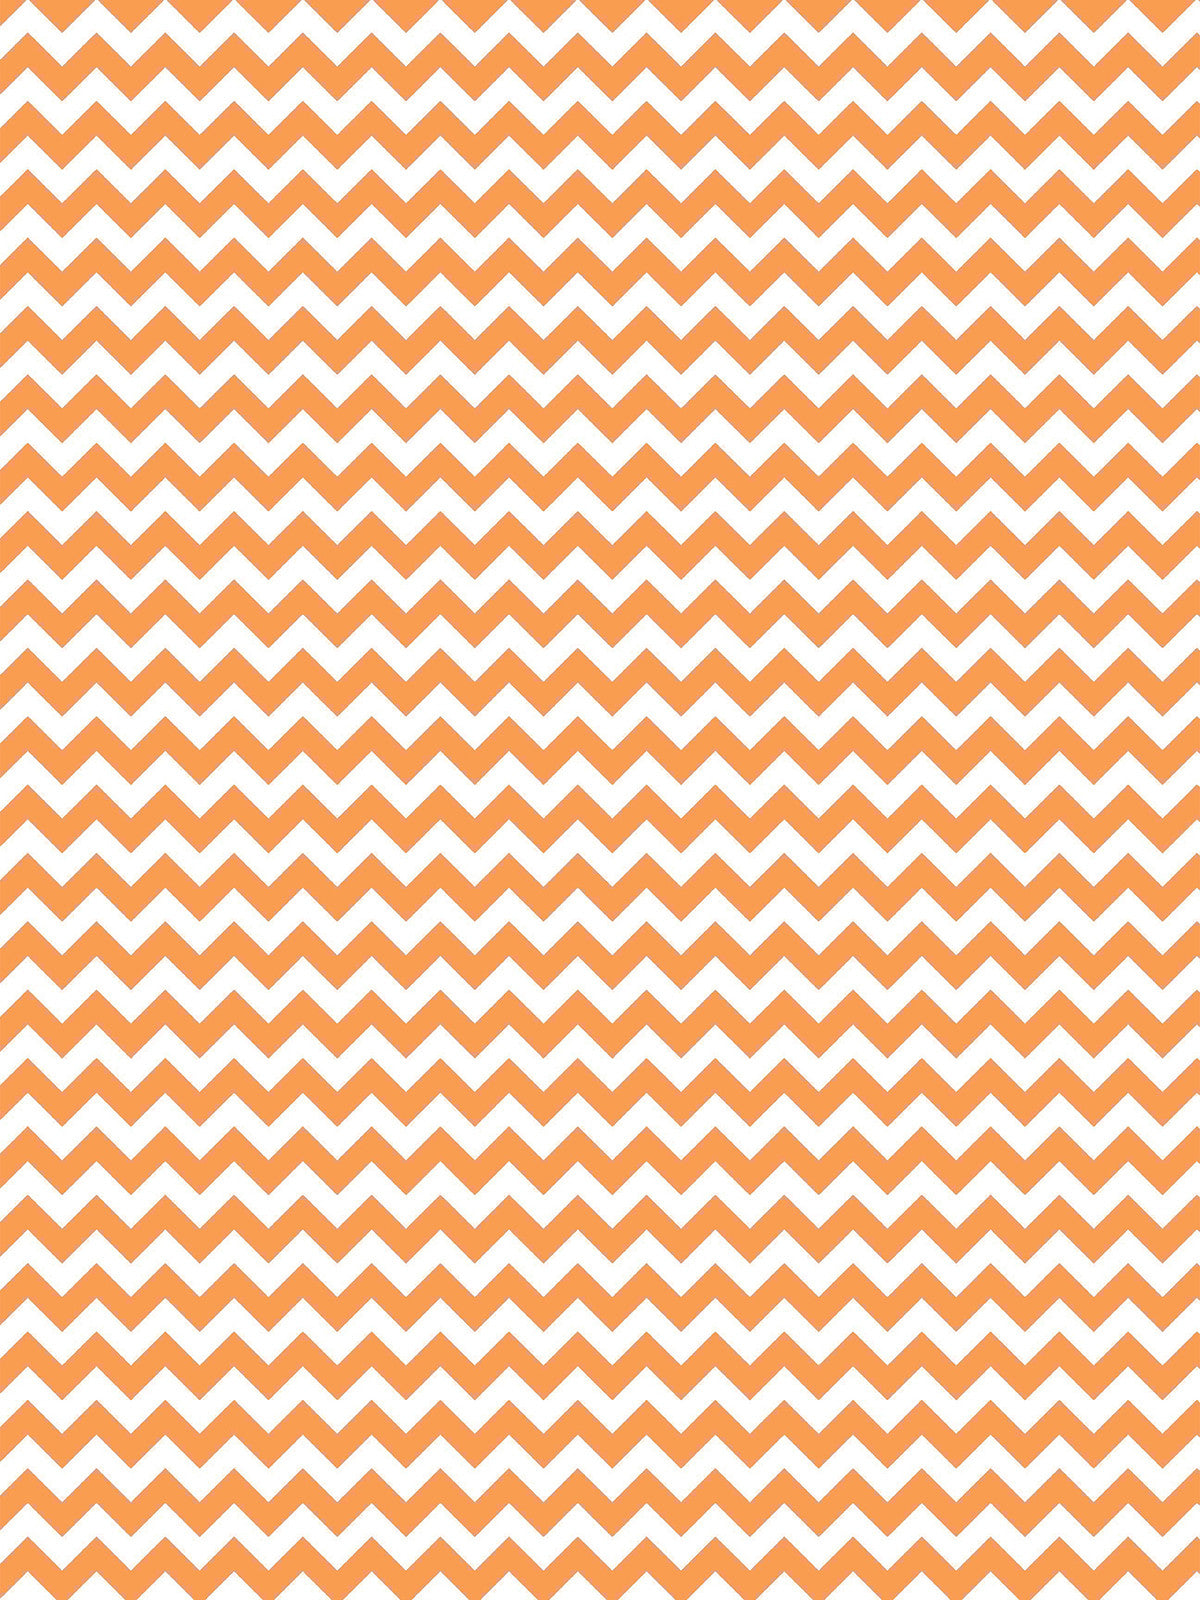 Tangerine Chevron Photography Backdrop / 9806 - DropPlace